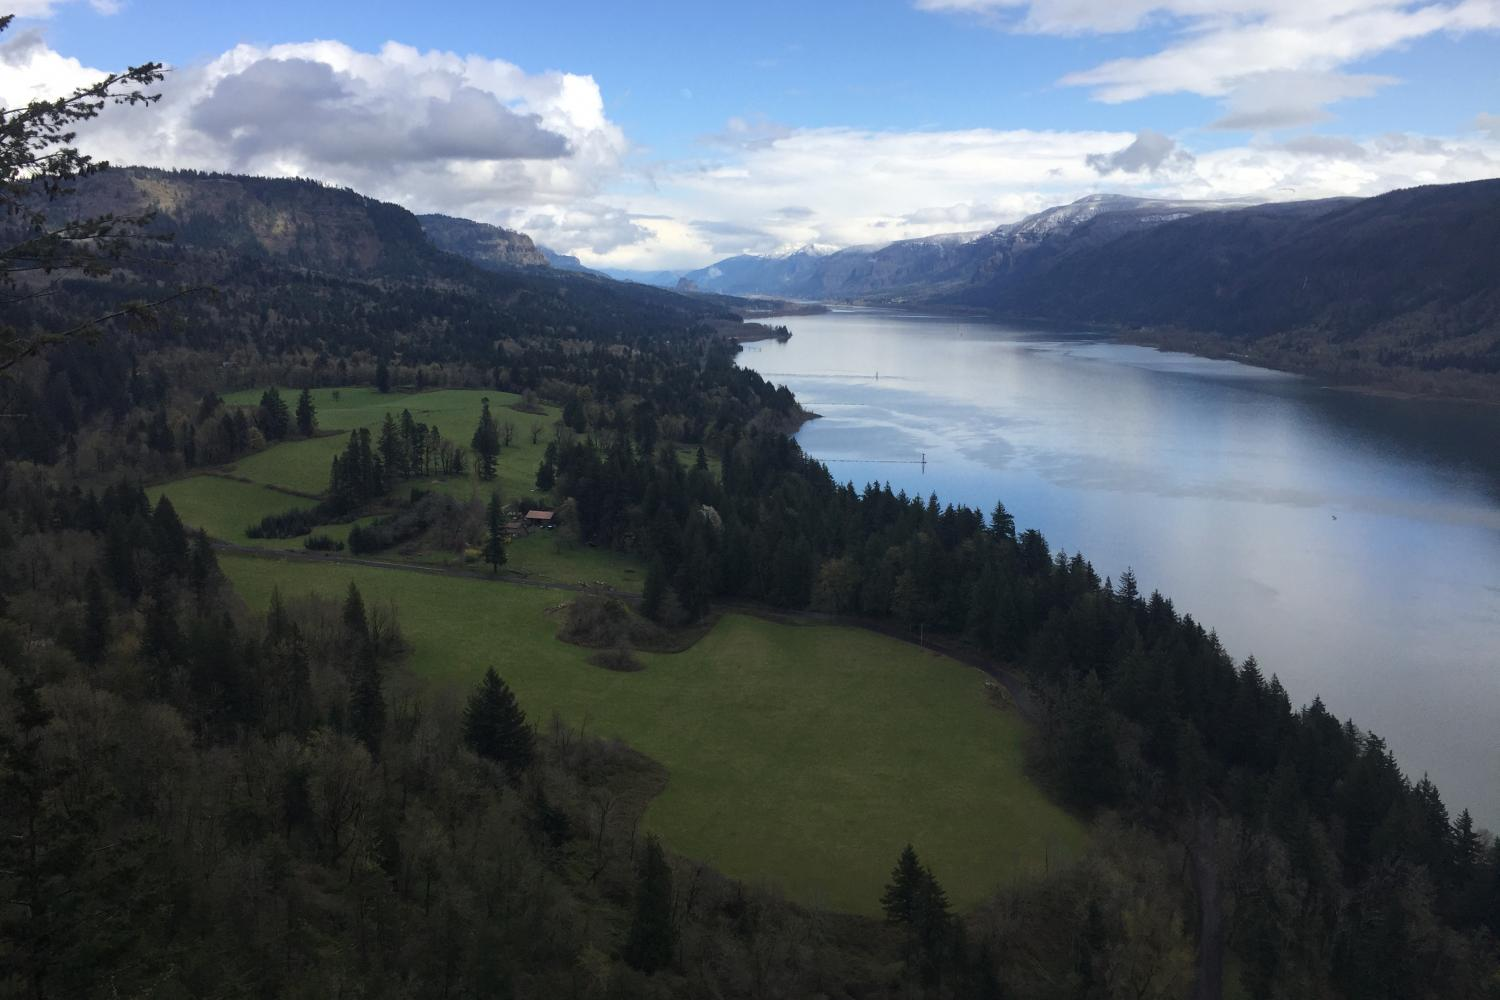 Looking East from Cape Horn